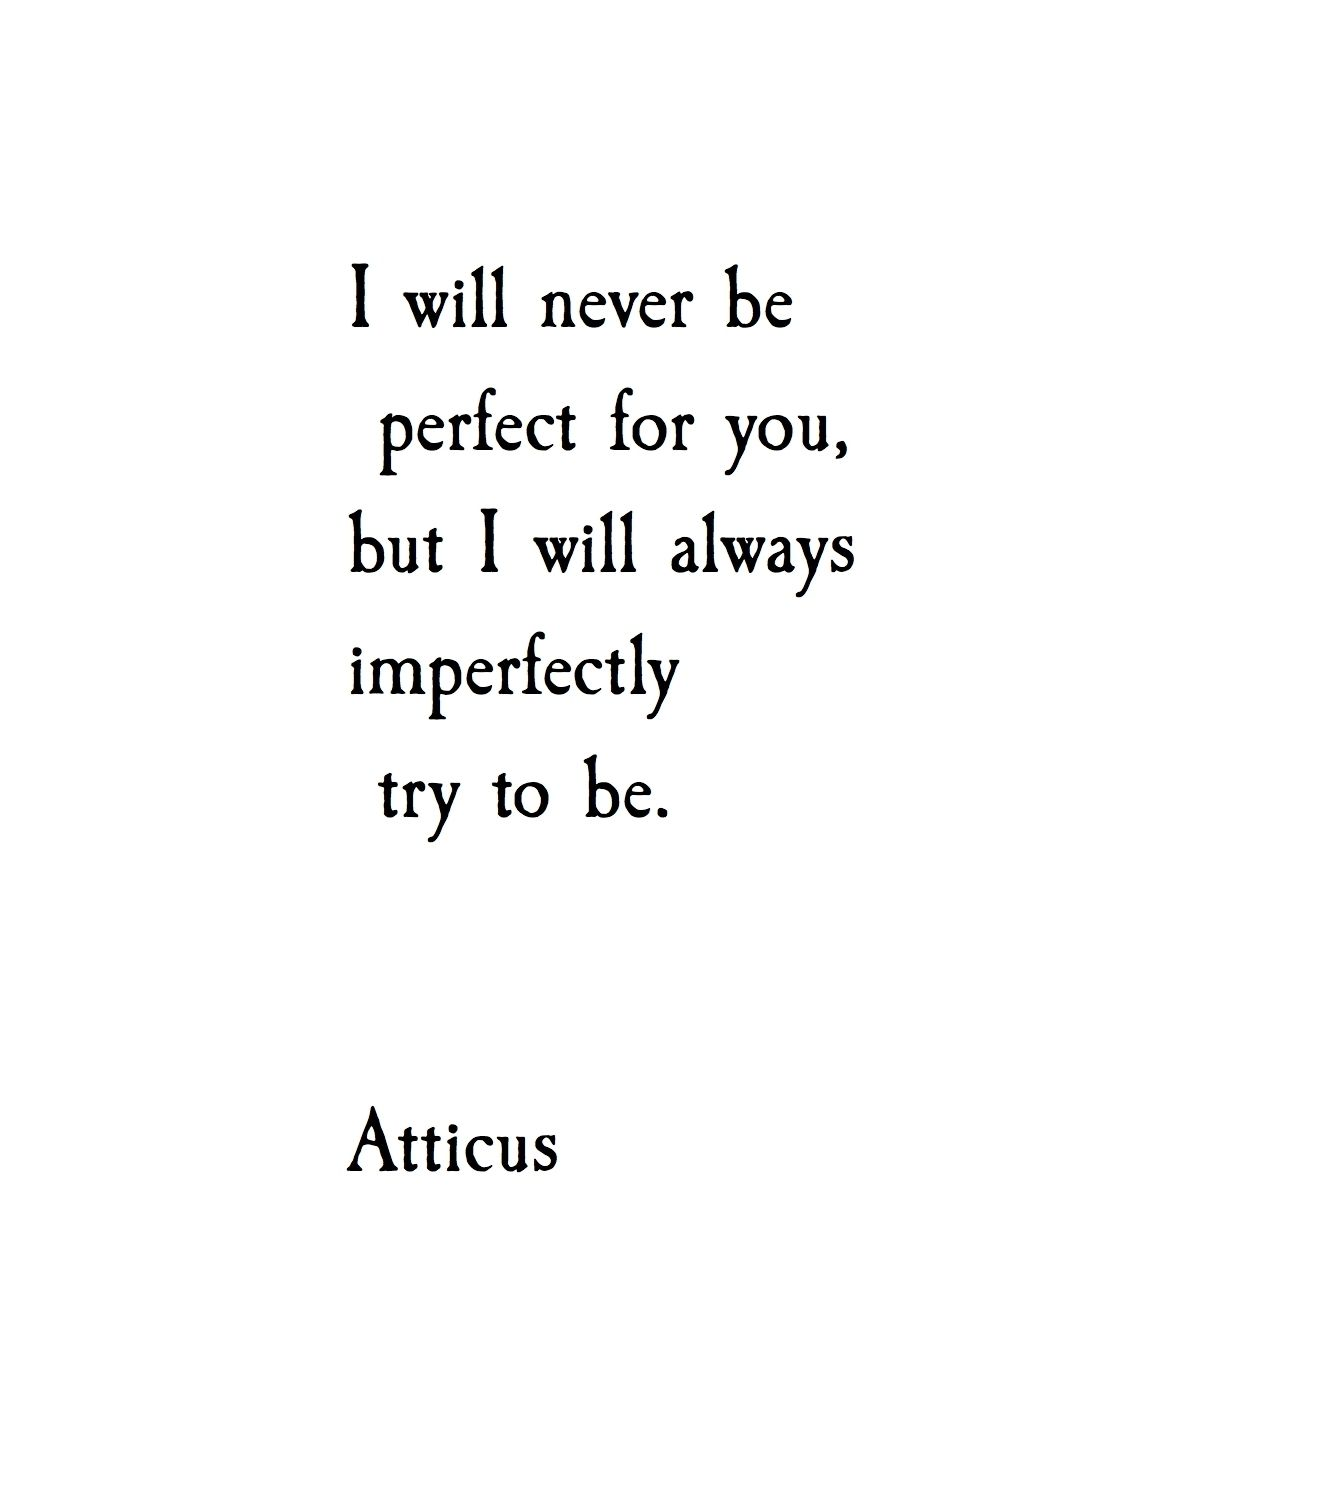 Imperfect Atticuspoetry Atticus Poetry Poem Imperfect Love